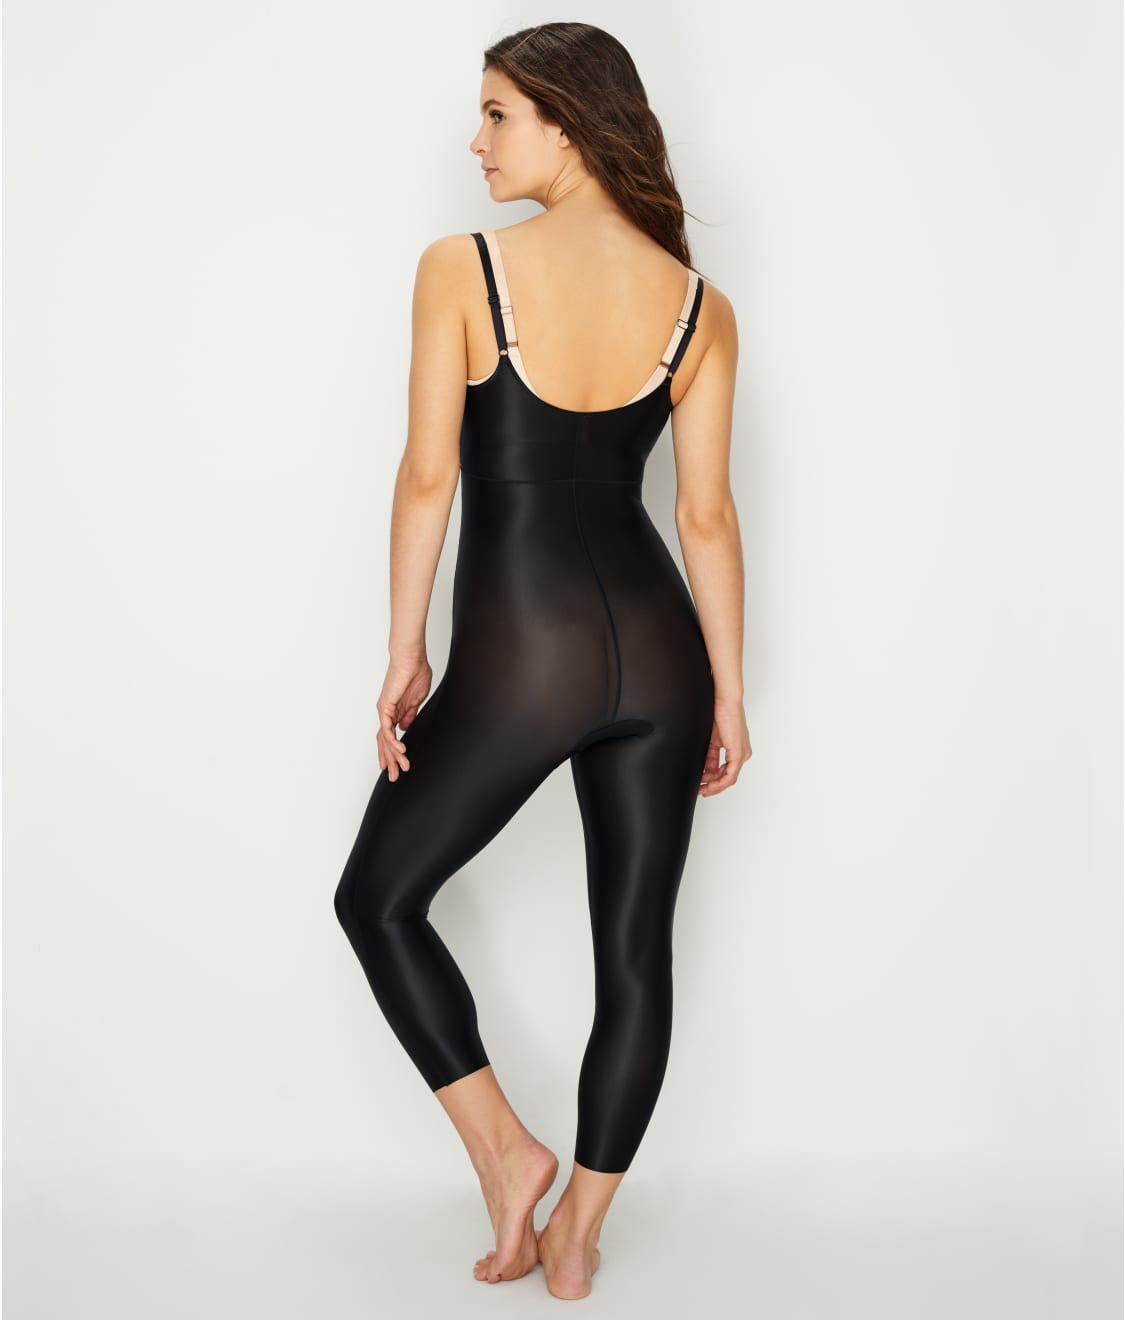 4f1487a79fa94 See Suit Your Fancy Medium Control Open-Bust Catsuit in Very Black